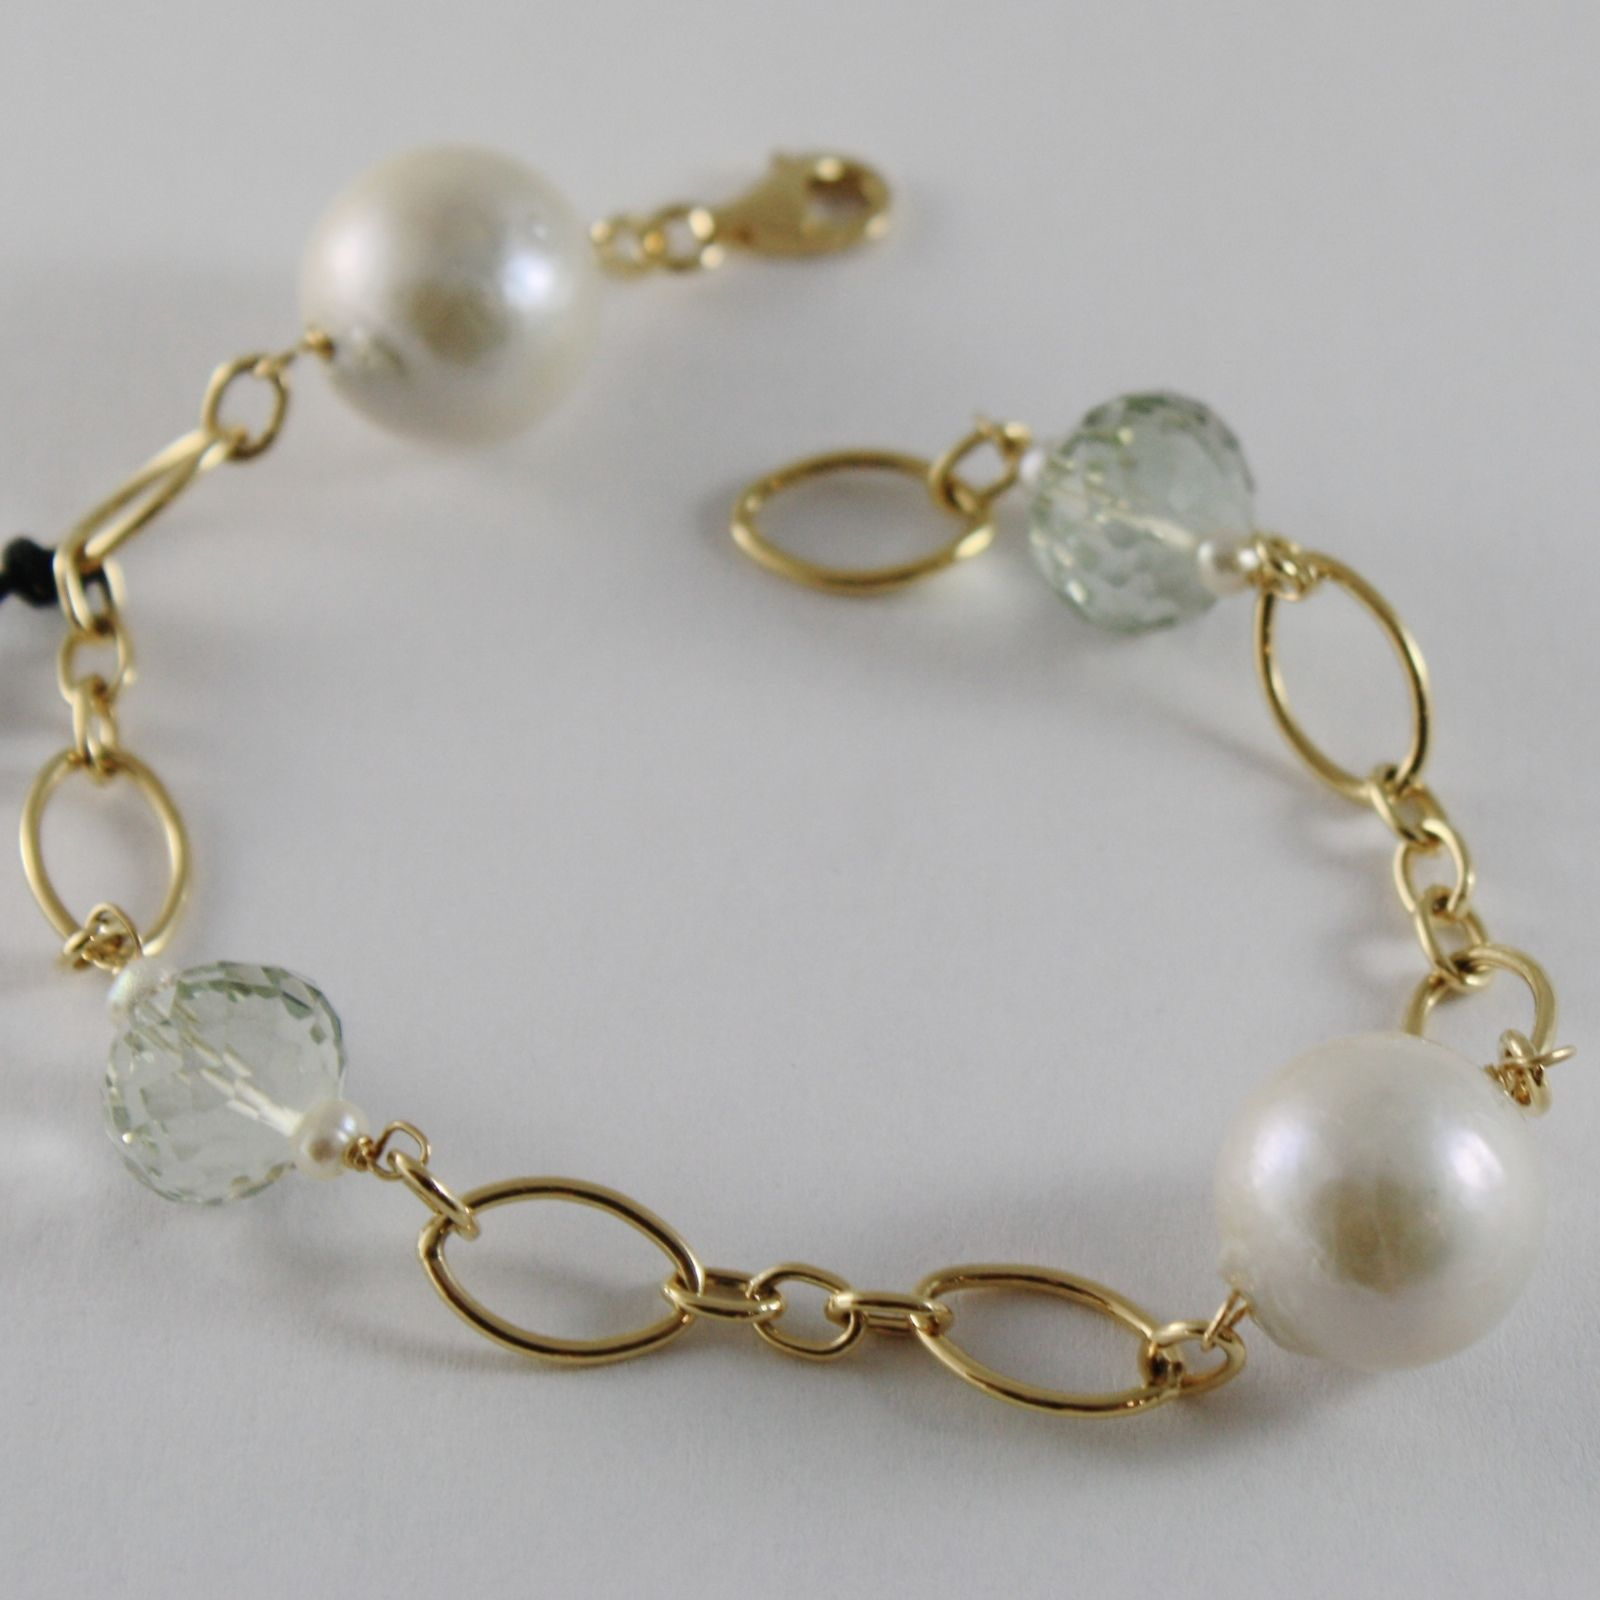 18K YELLOW GOLD BRACELET WITH BIG WHITE PEARLS, CUSHION PRASIOLITE MADE IN ITALY